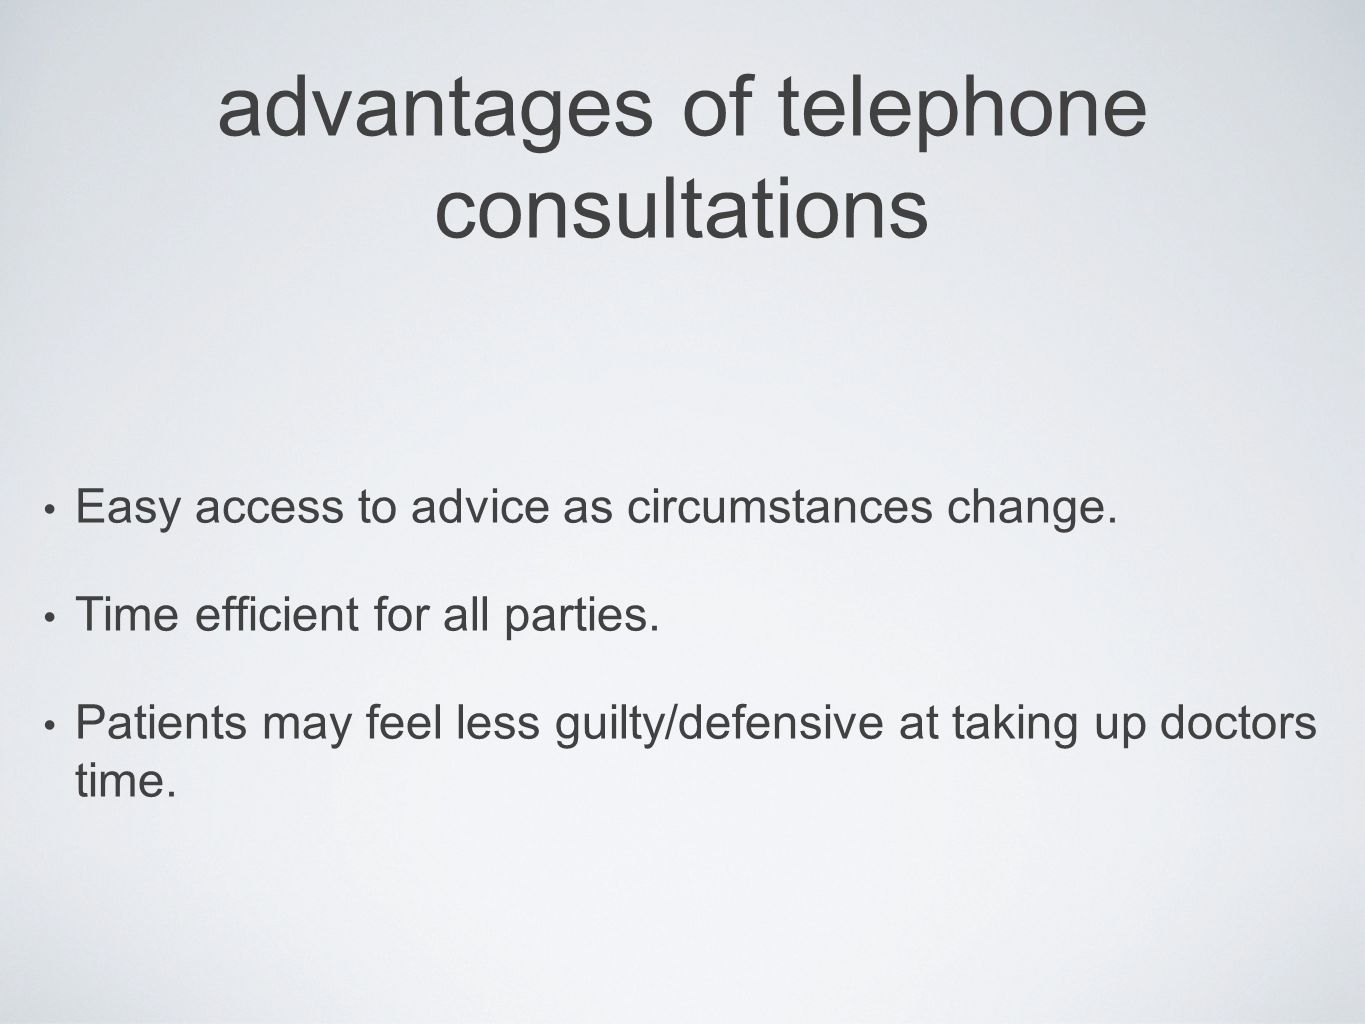 advantages of telephone consultations Easy access to advice as circumstances change. Time efficient for all parties. Patients may feel less guilty/def